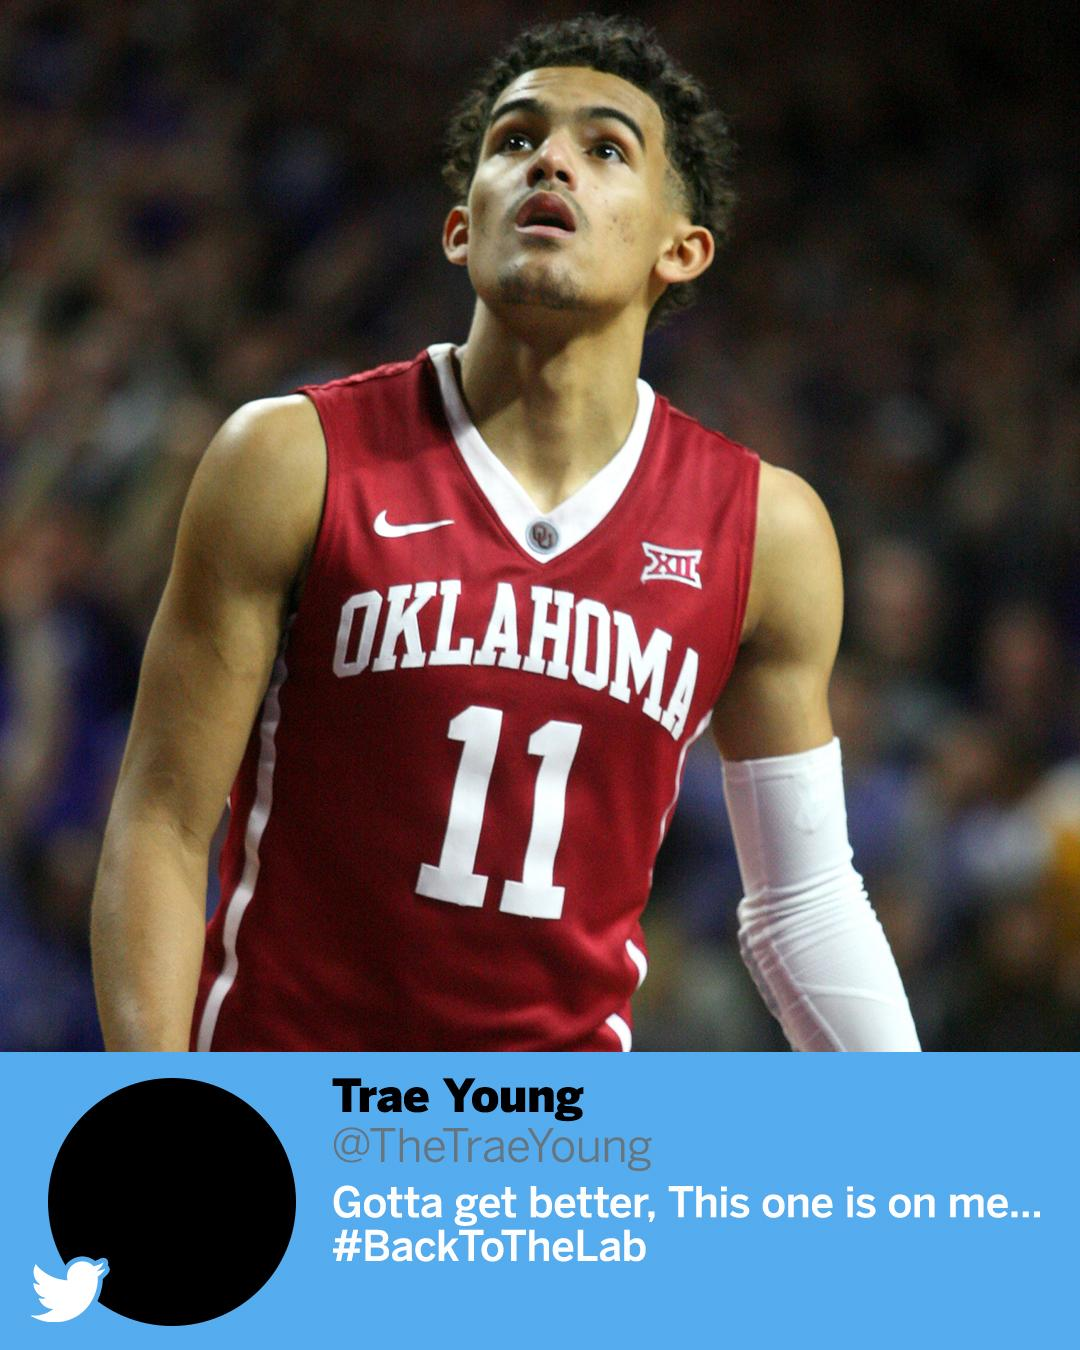 After a tough loss, Trae Young took responsibility. https://t.co/XiR5rbfghM